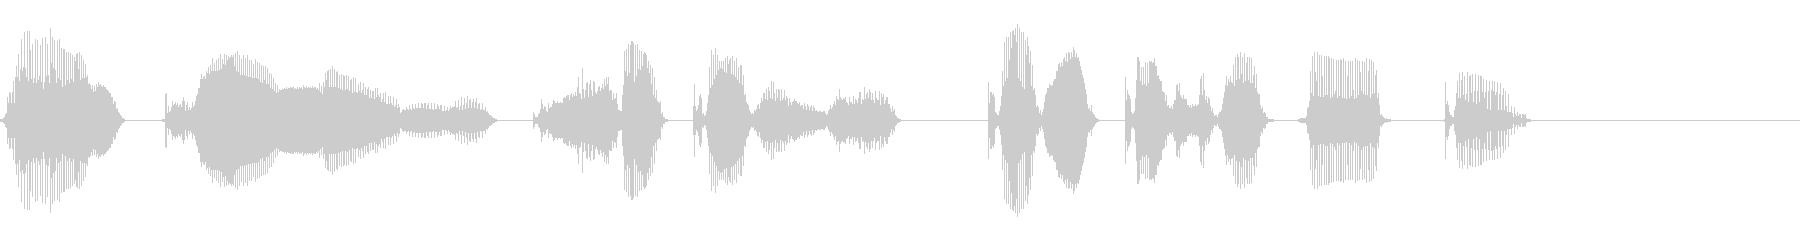 One-on-one support from the basics's unreproduced waveform